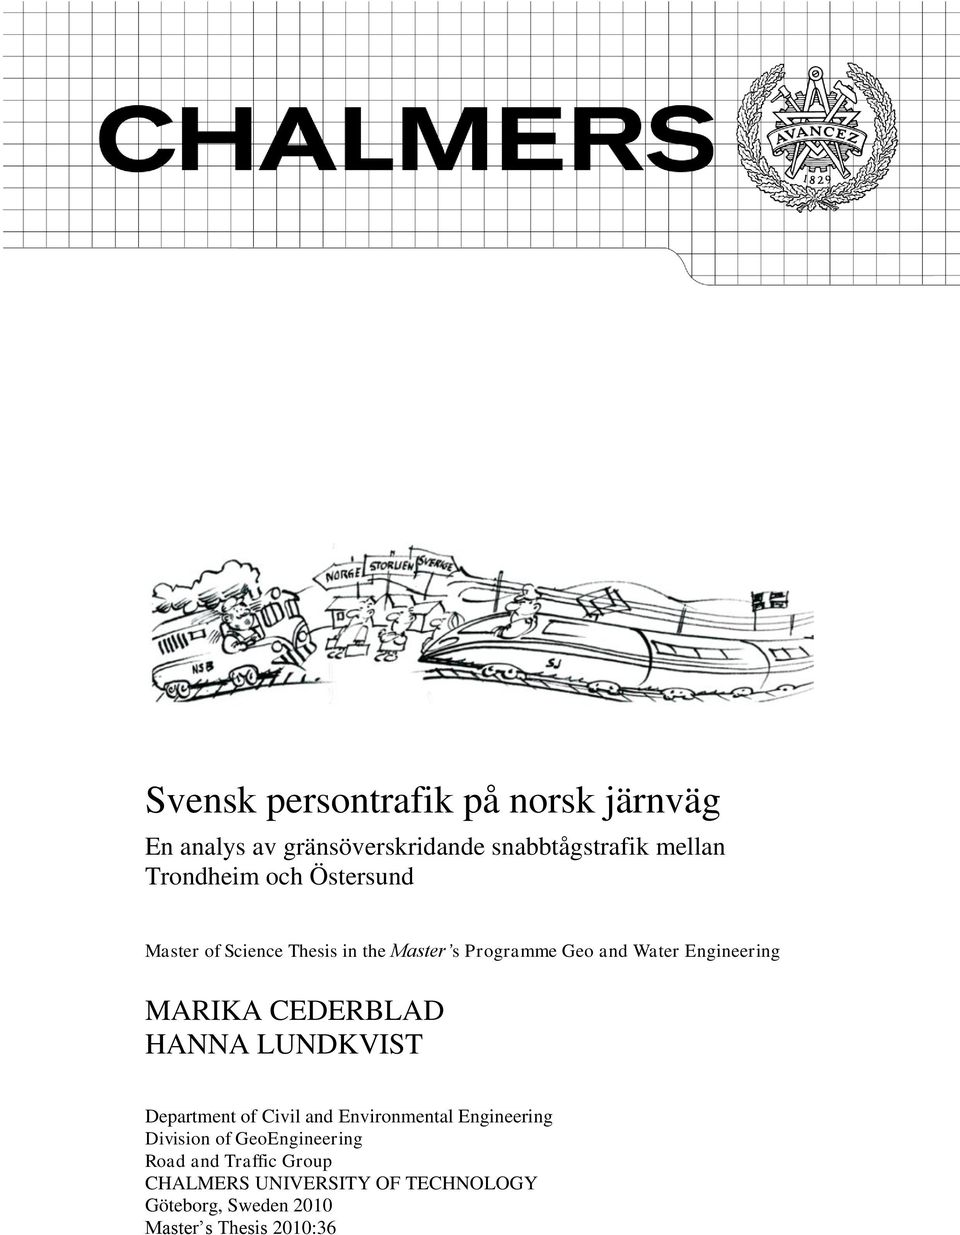 CEDERBLAD HANNA LUNDKVIST Department of Civil and Environmental Engineering Division of